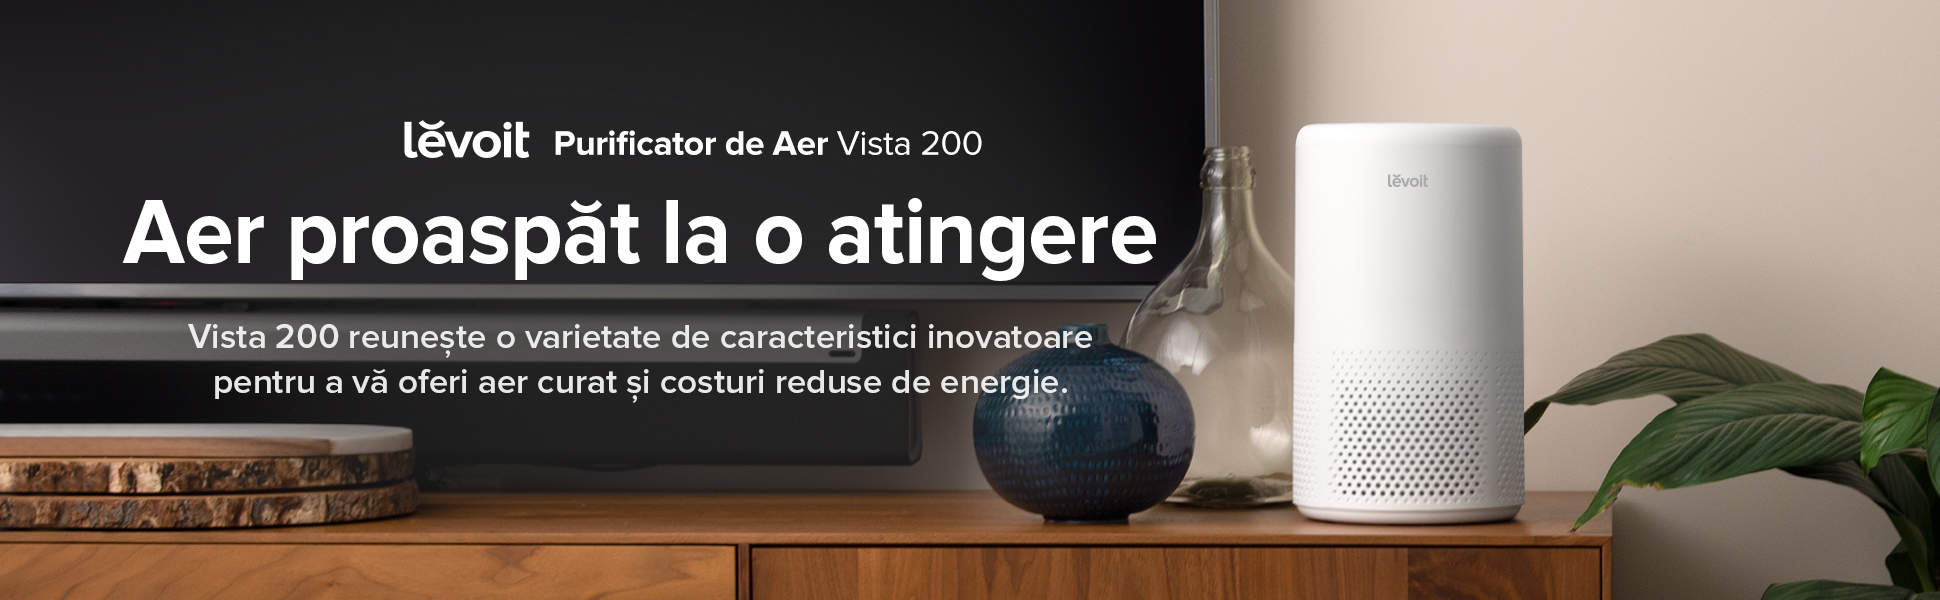 Purificator de aer Levoit Vista 200, Alb, Pet friendly, Filtru True HEPA, Carbon activ, Super silent, Filtrare 99.97%,